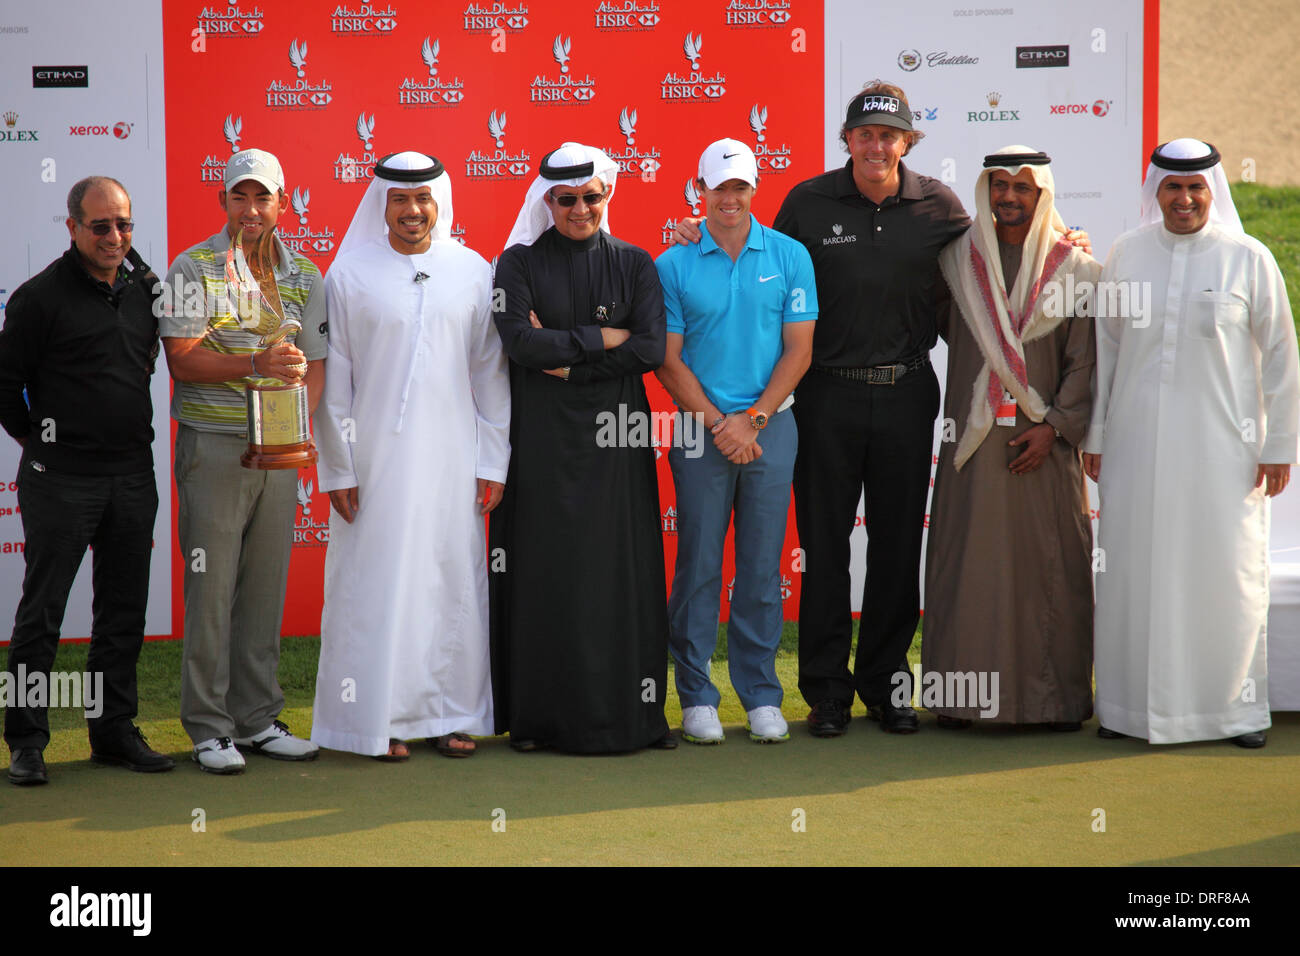 The Awards ceremony at the 2014 Abu Dhabi HSBC Golf Championship. - Stock Image